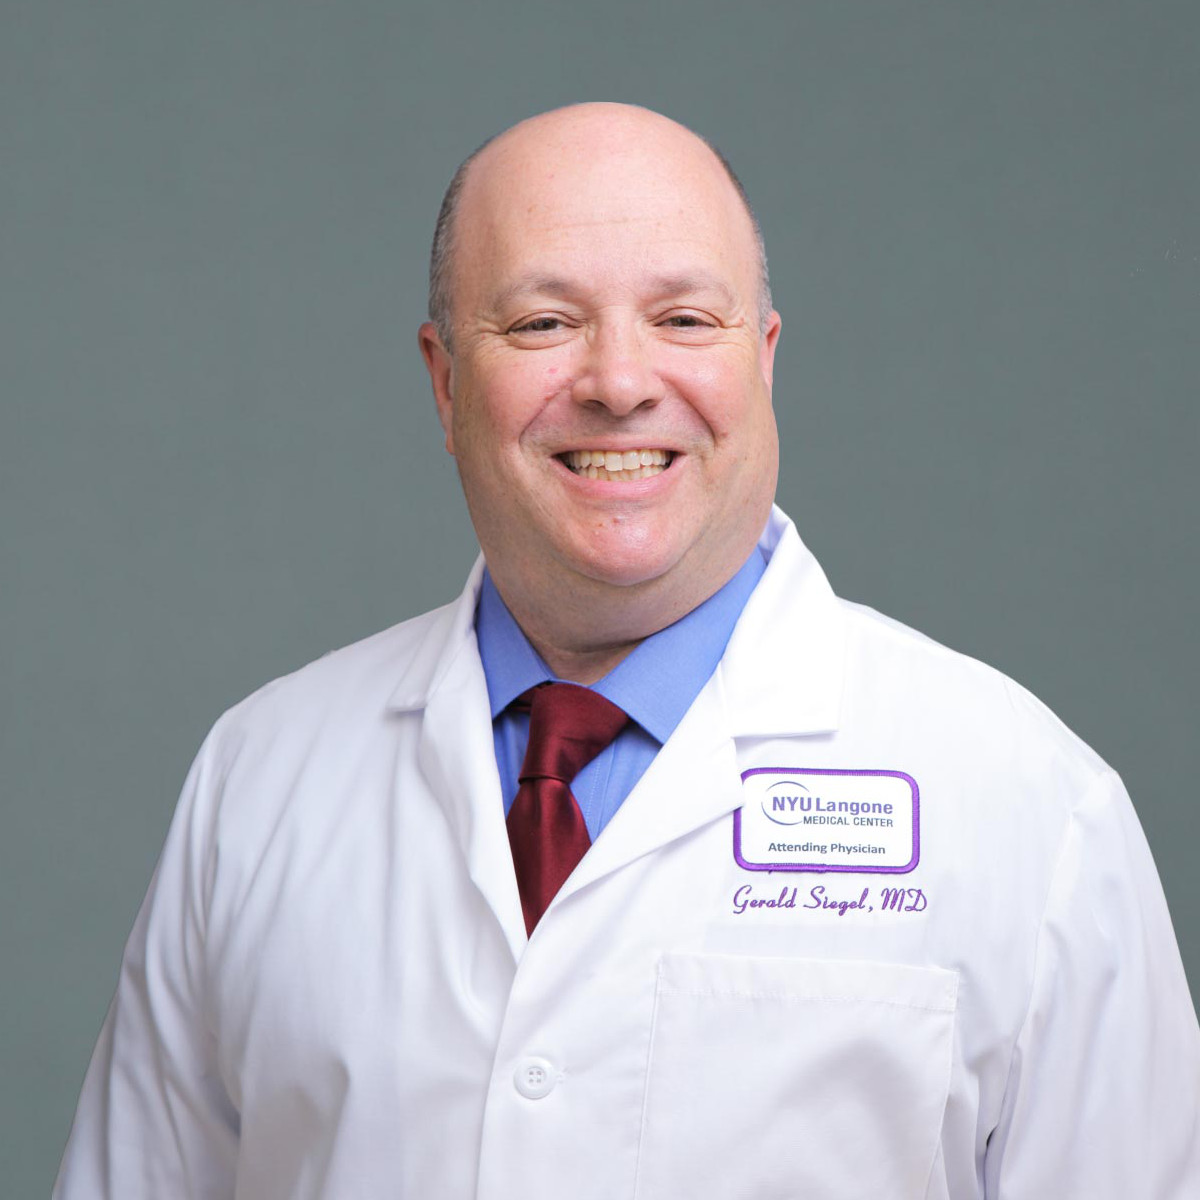 Gerald Siegel,MD. Obstetrics, Gynecology